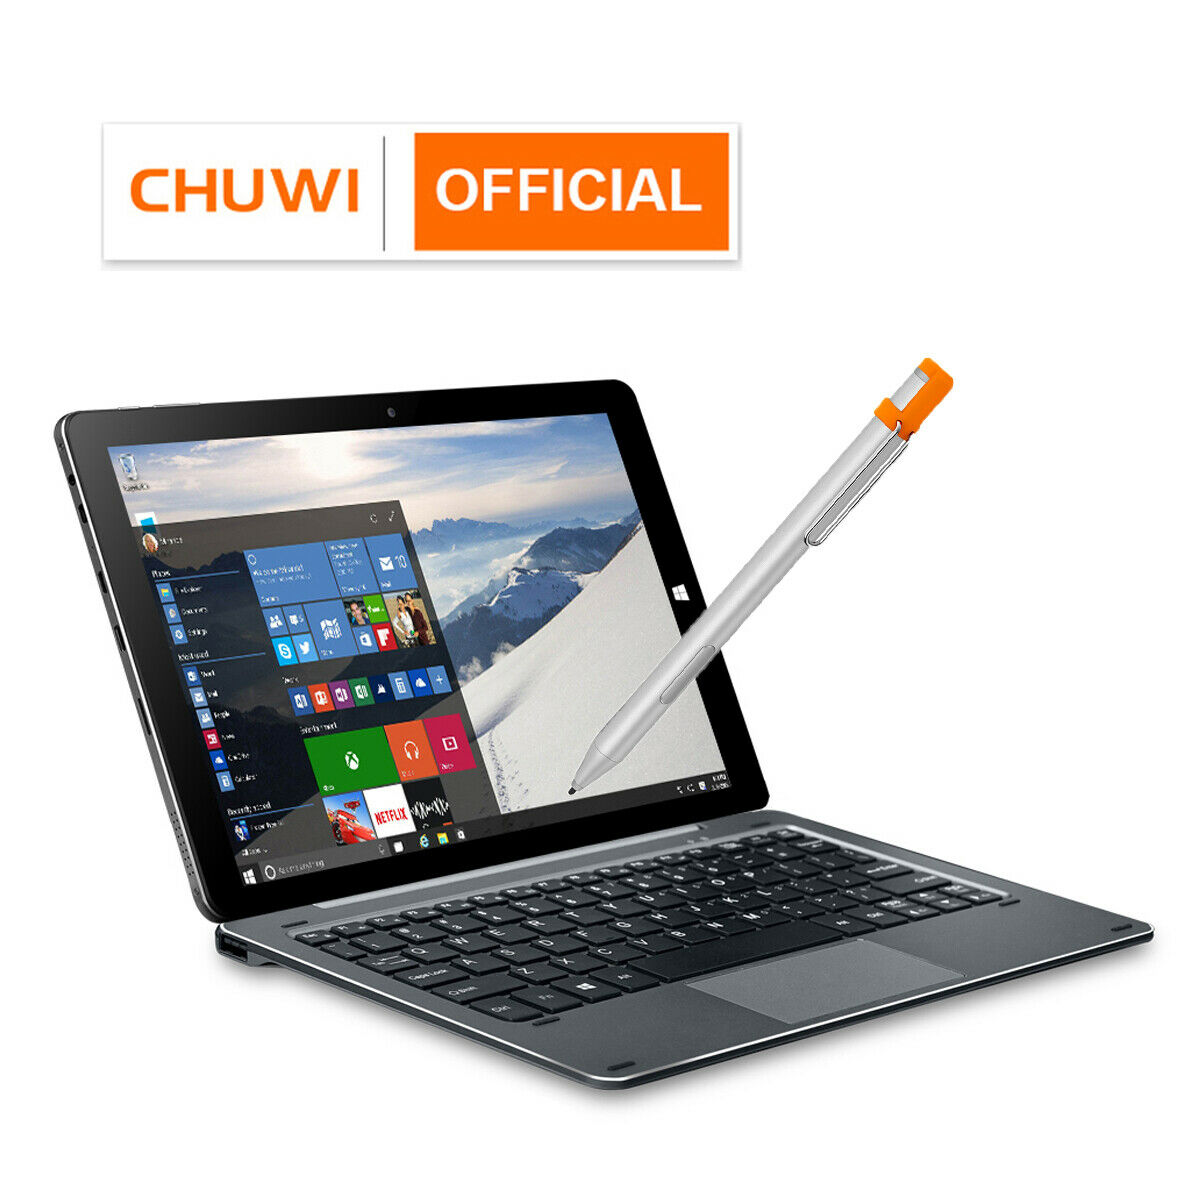 "Laptop Windows - CHUWI Hi10 X Intel N4120 Quad Core 6+128G Tablet/Laptop 2 in 1 Windows 10.1"" FHD"